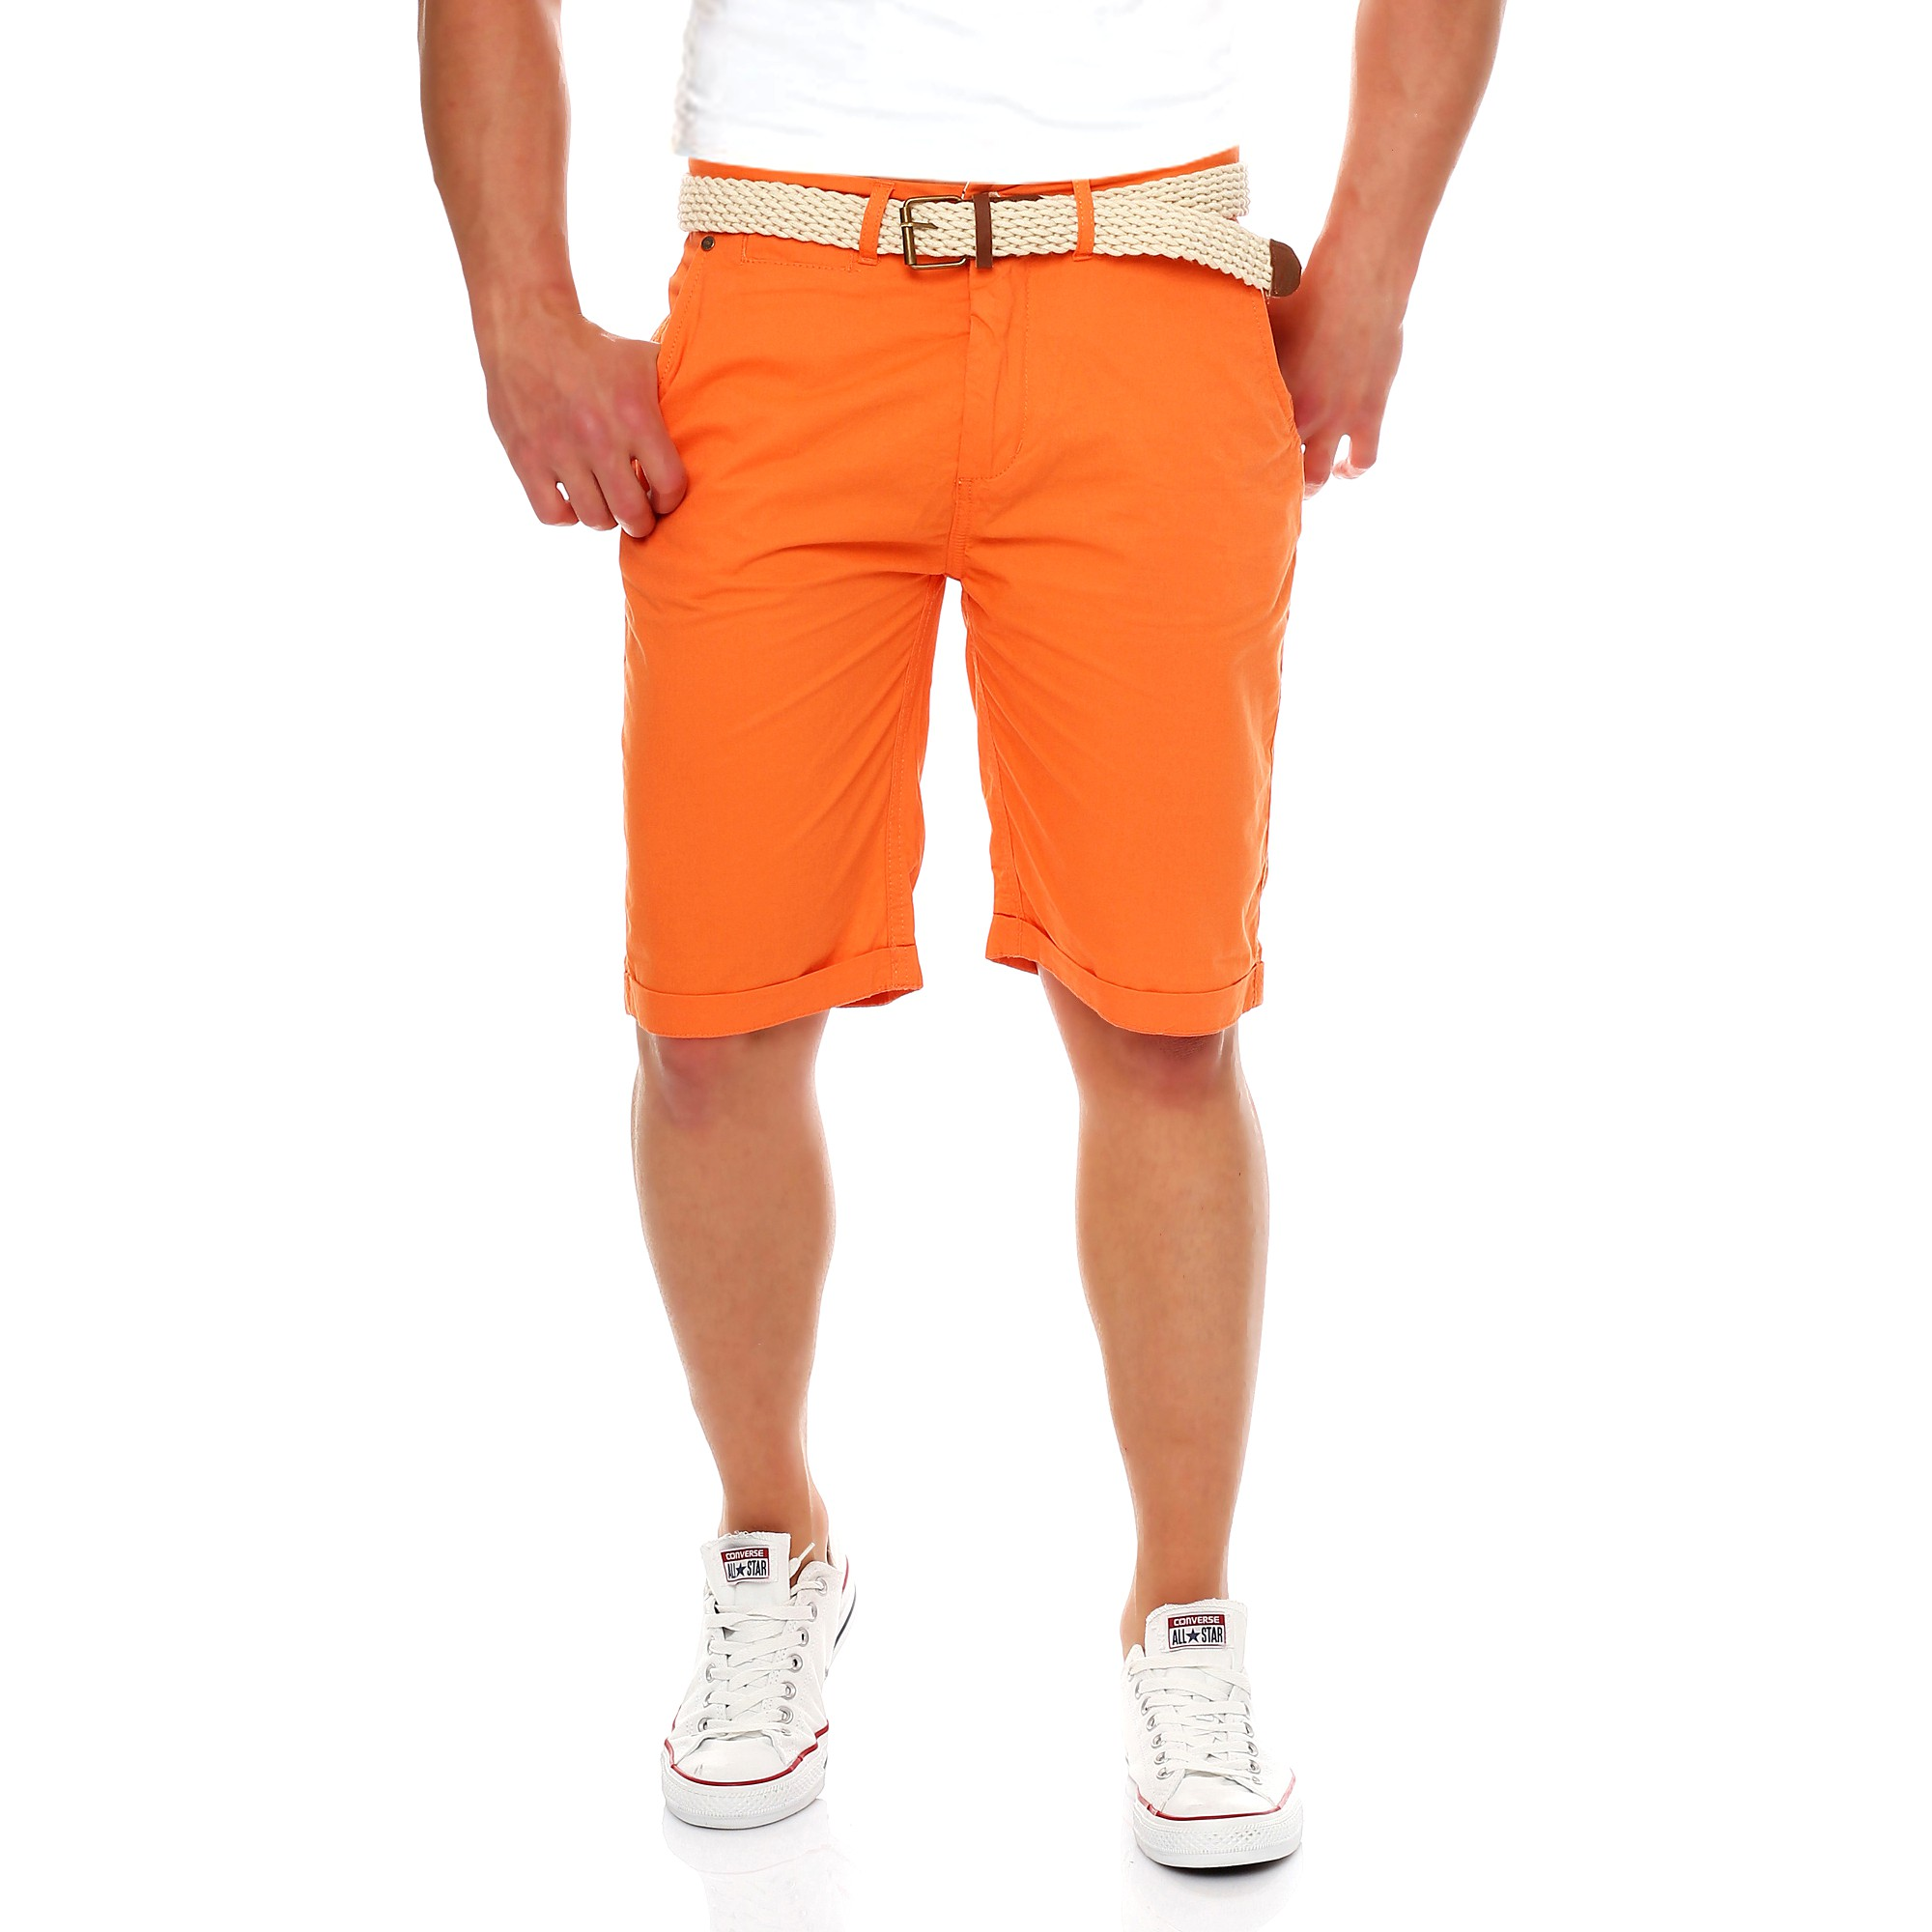 Geographical-Norway-PIPERNO-Chino-Short-kurze-Hose-Bermuda-S-XXXL